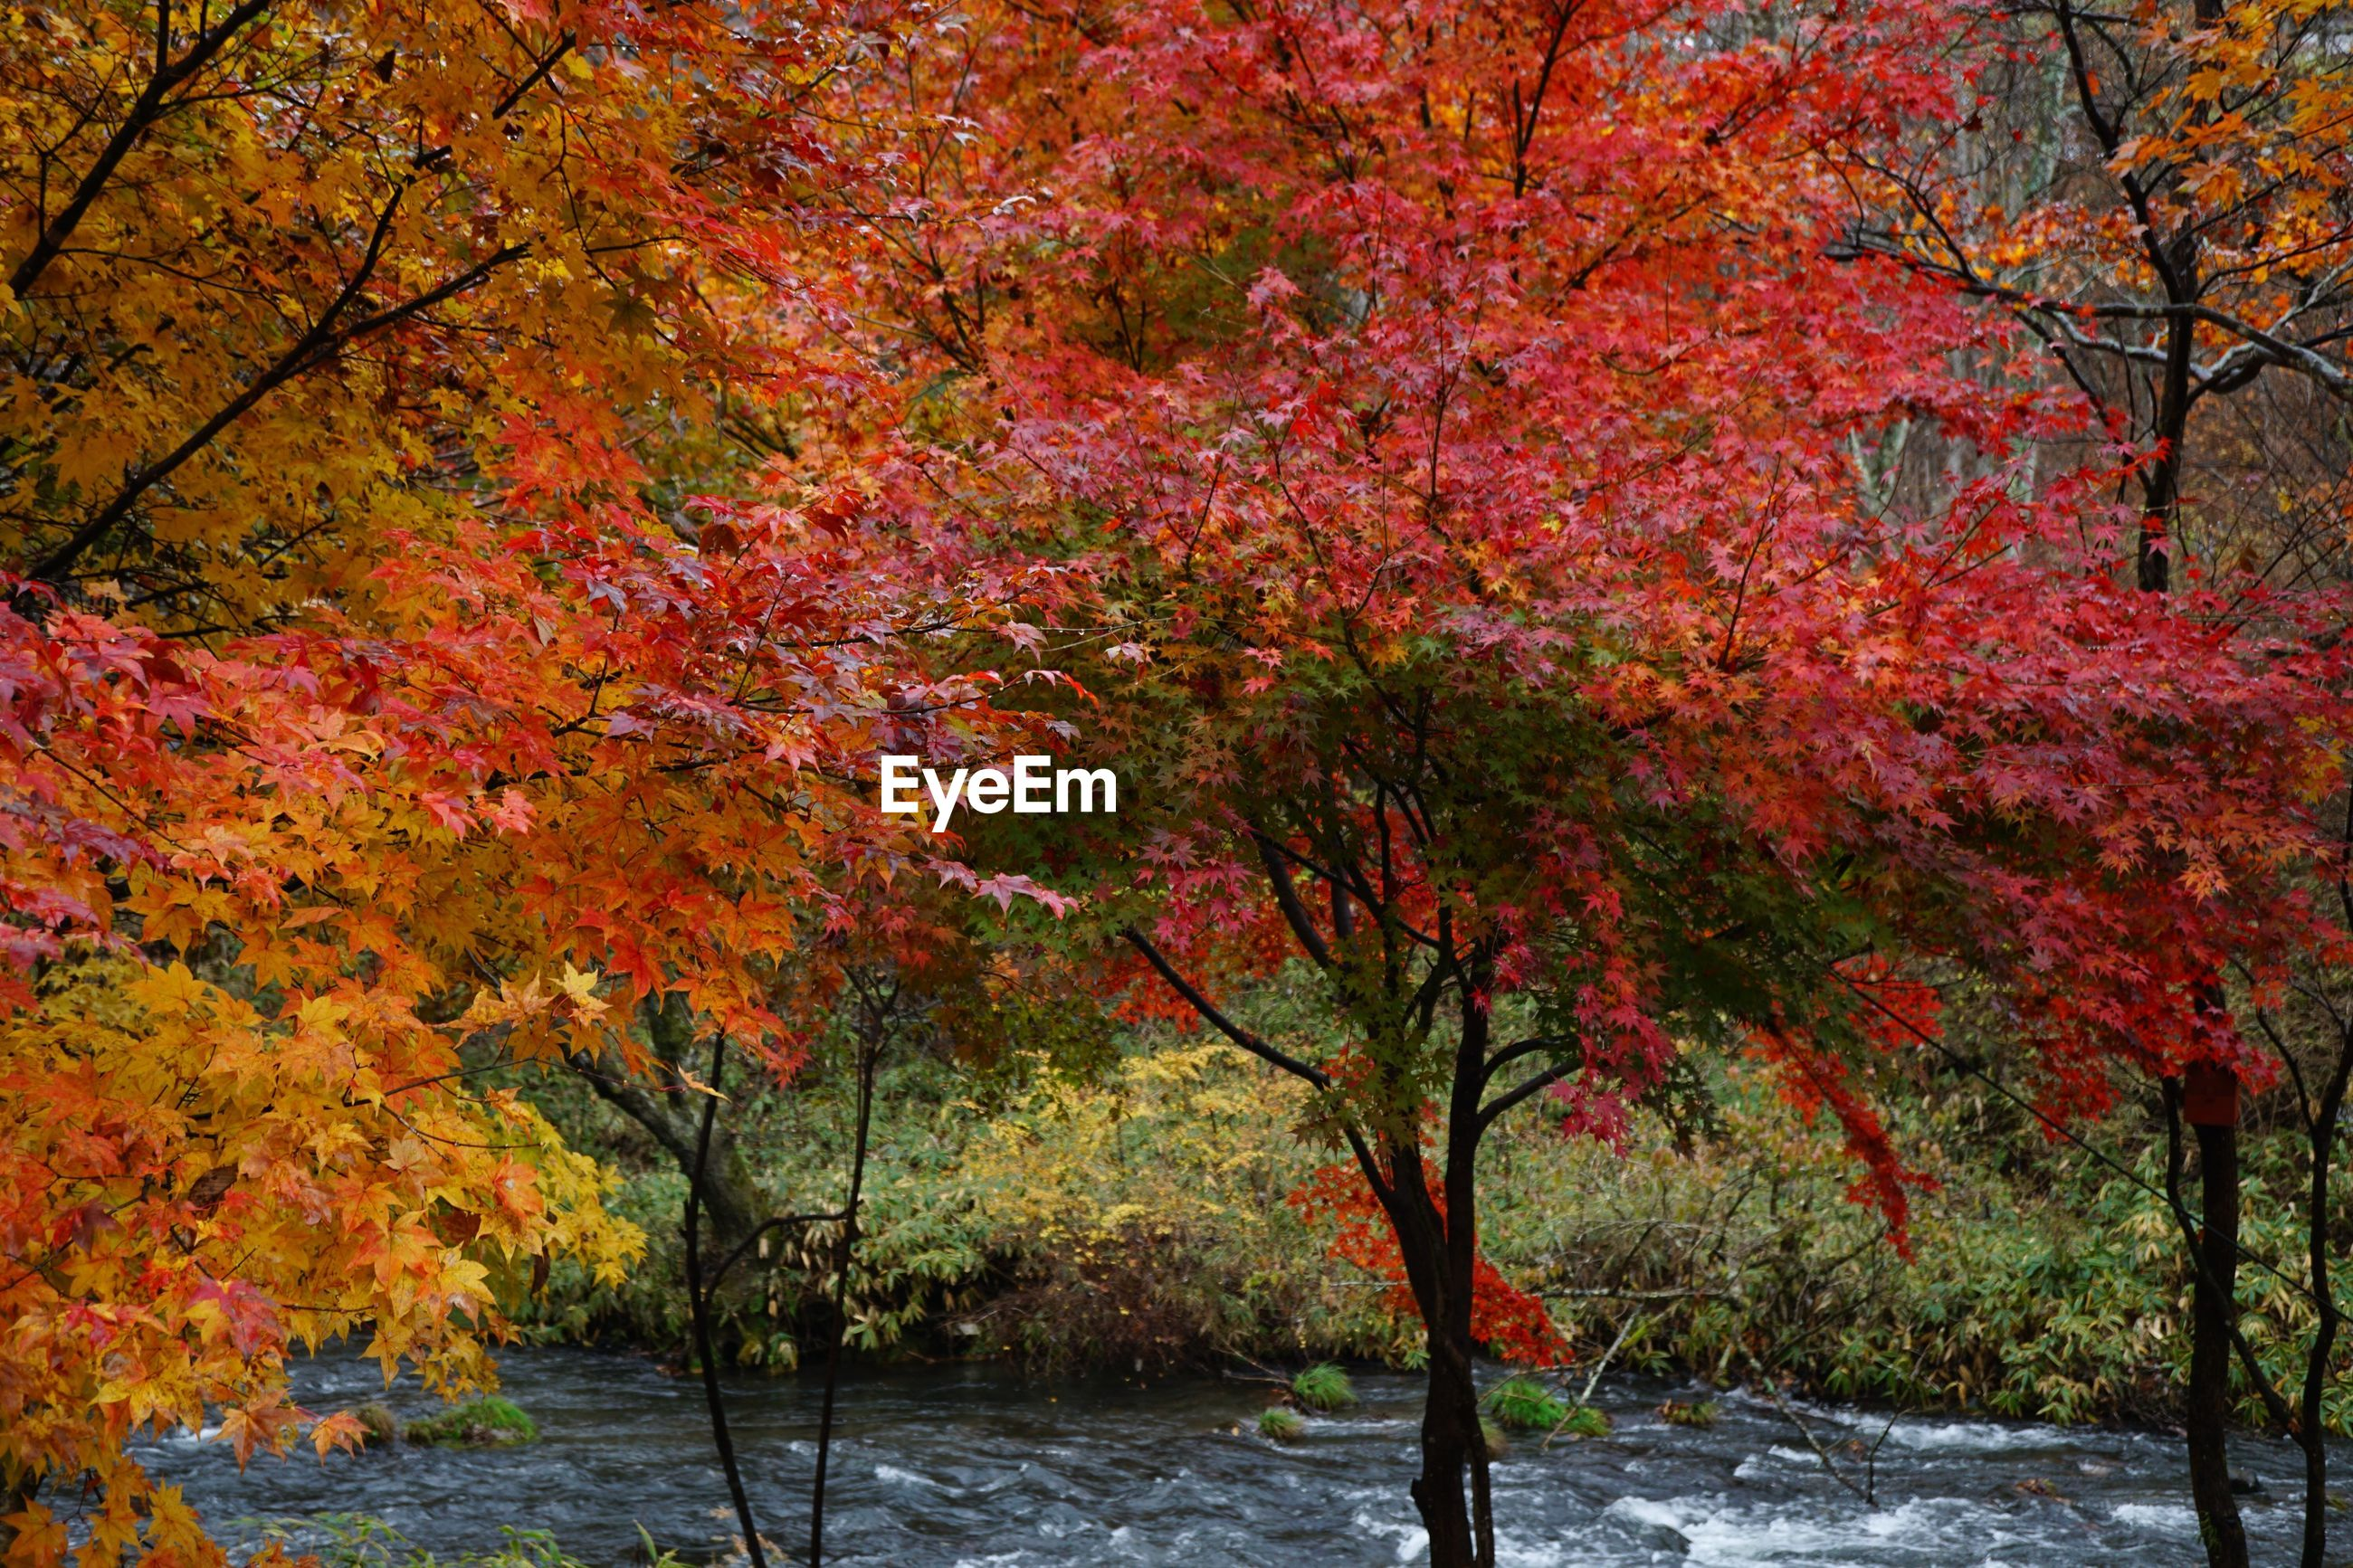 tree, plant, autumn, beauty in nature, change, nature, orange color, water, growth, no people, tranquility, branch, scenics - nature, day, outdoors, leaf, park, tranquil scene, maple tree, maple leaf, fall, autumn collection